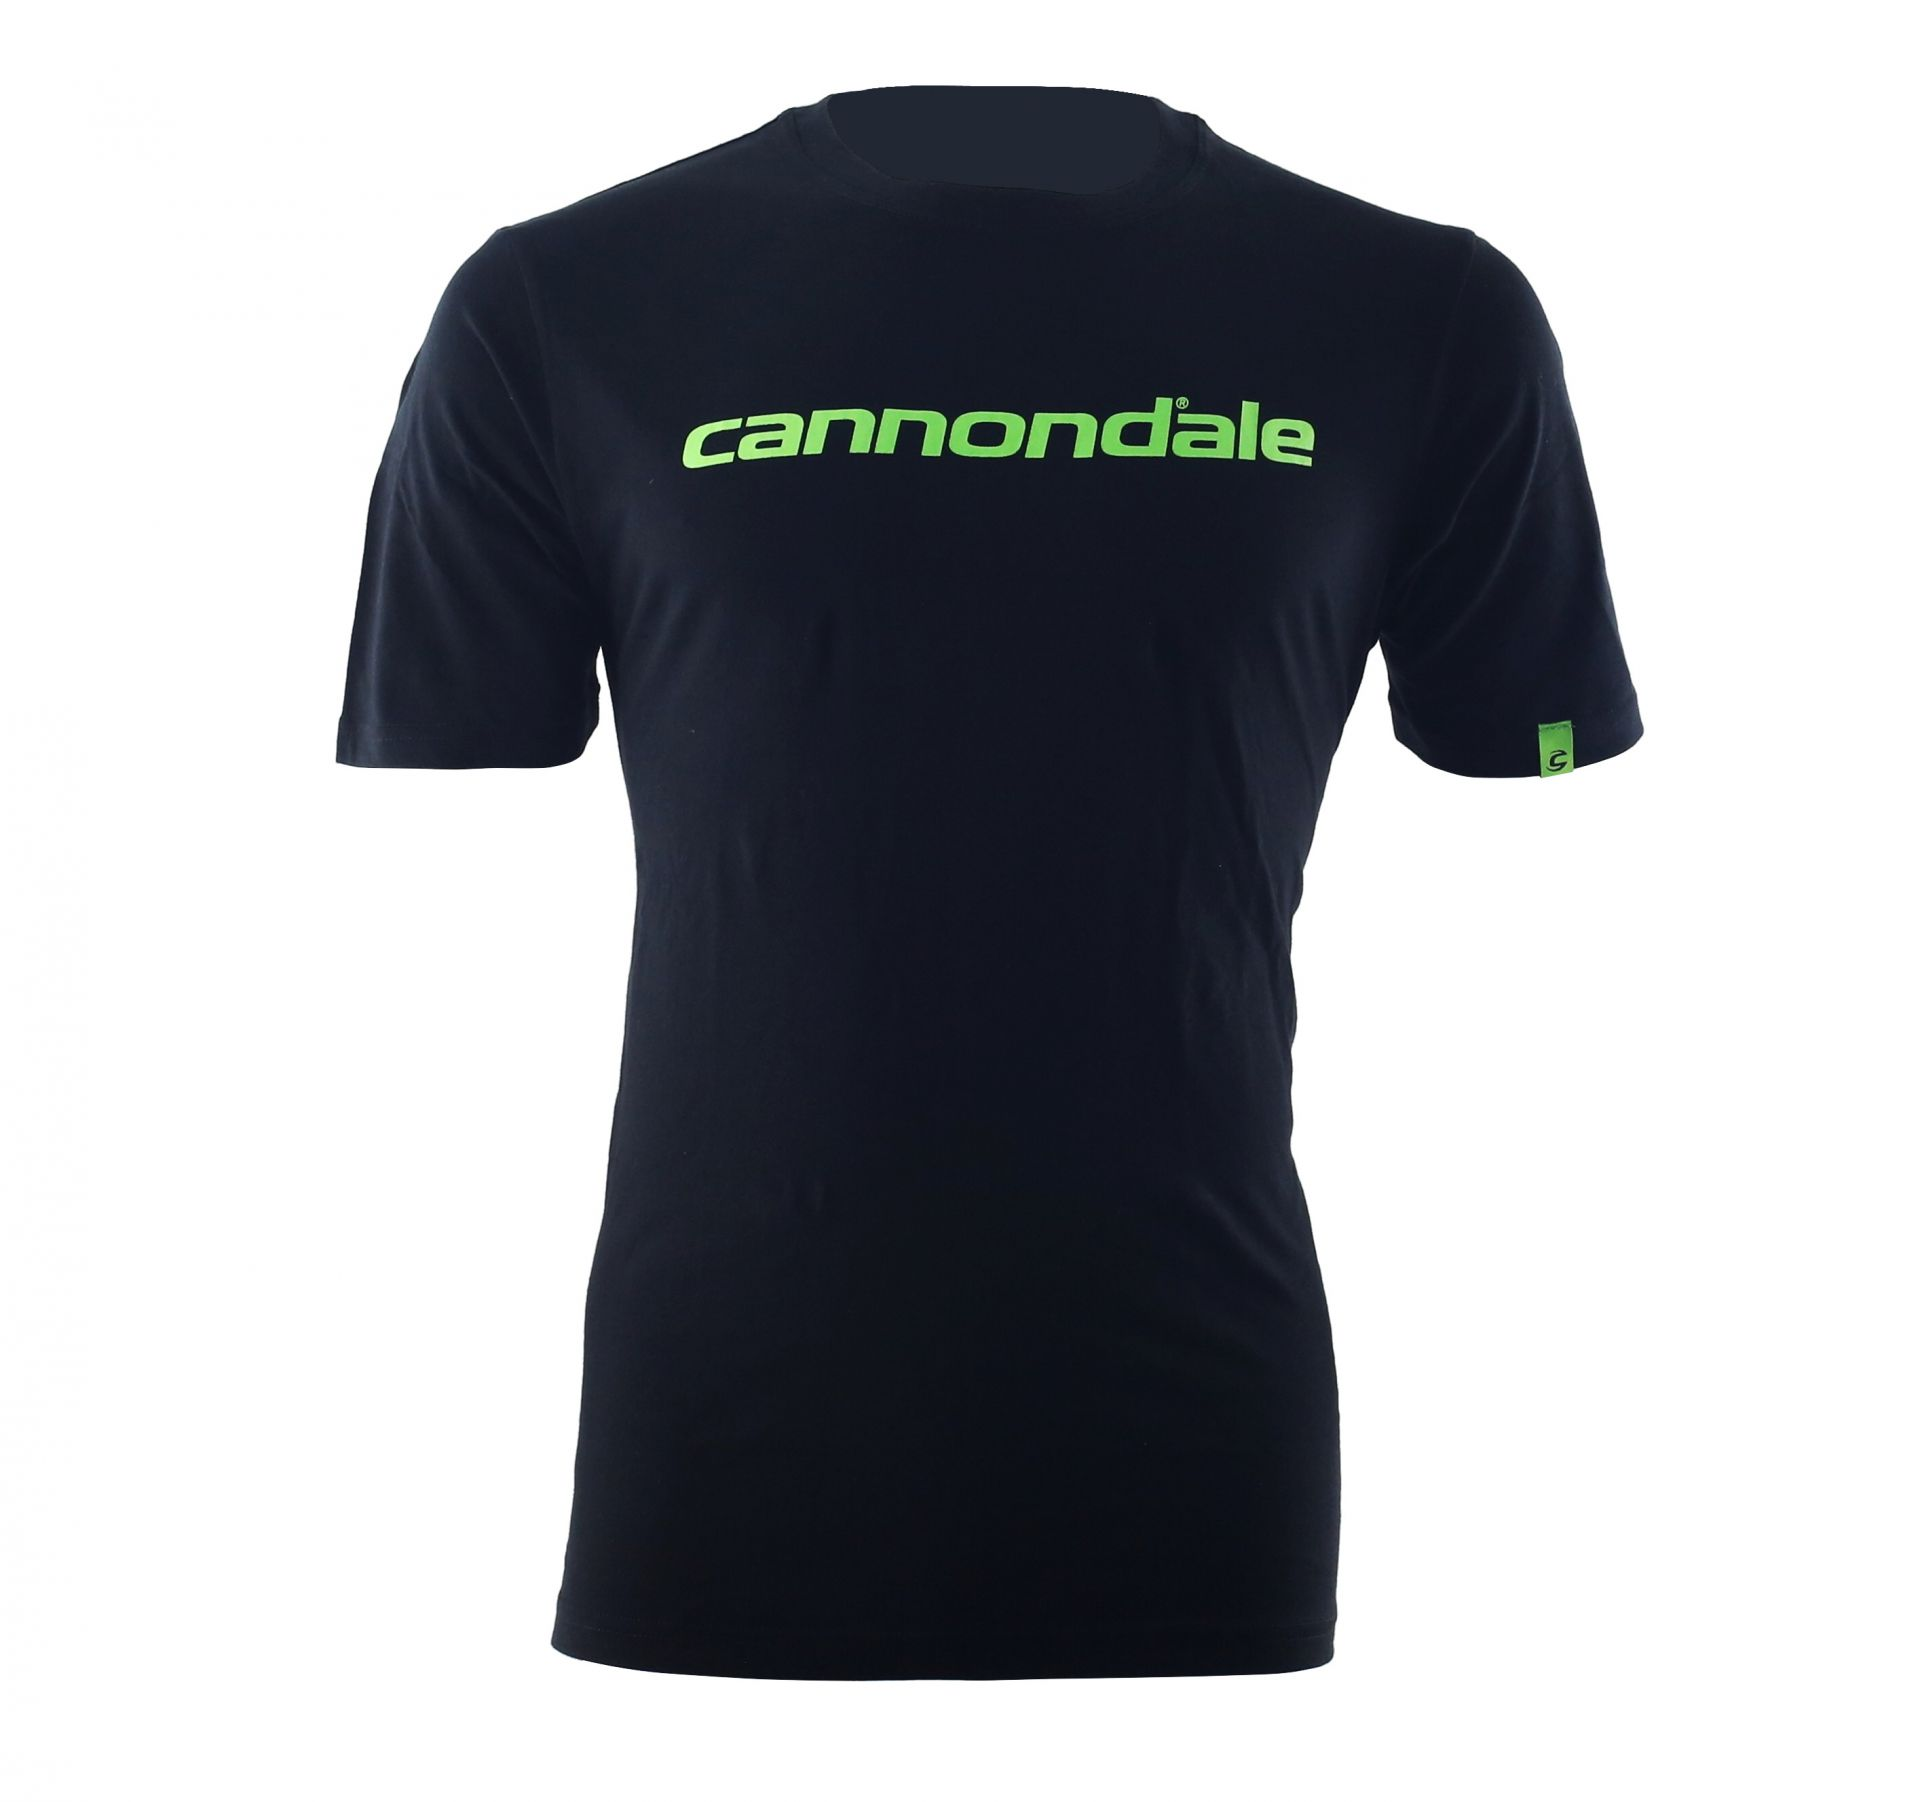 T-Shirt Cannondale Casual Noir - S